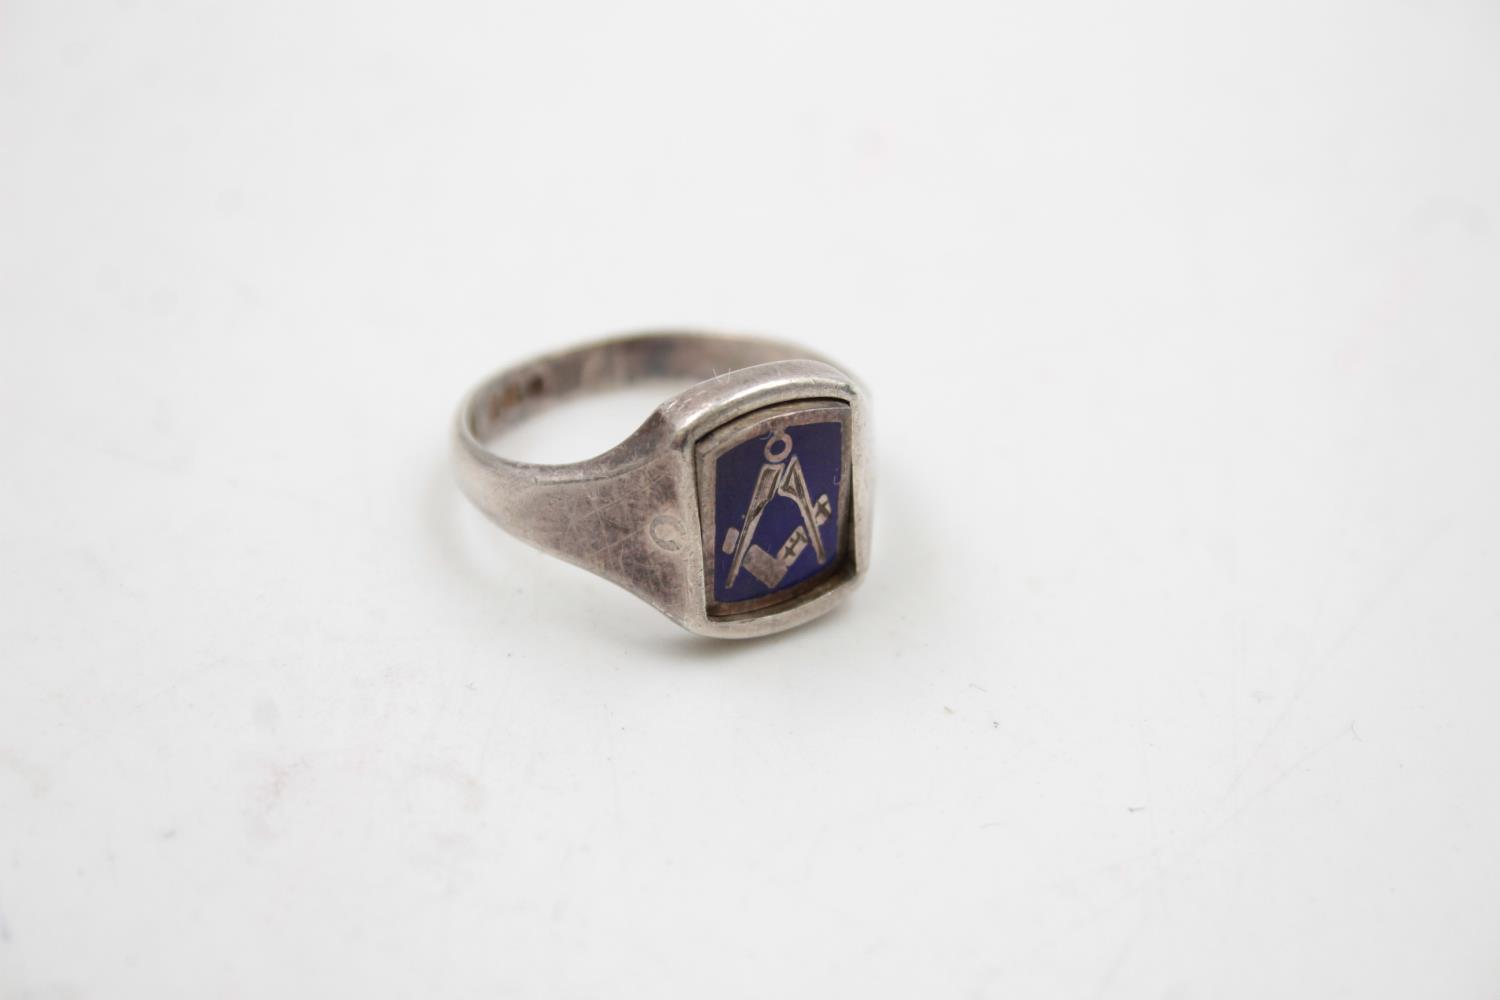 2 x Vintage Gents Stamped .925 STERLING SILVER Masonic Rings Boxed (18g) - Image 3 of 9